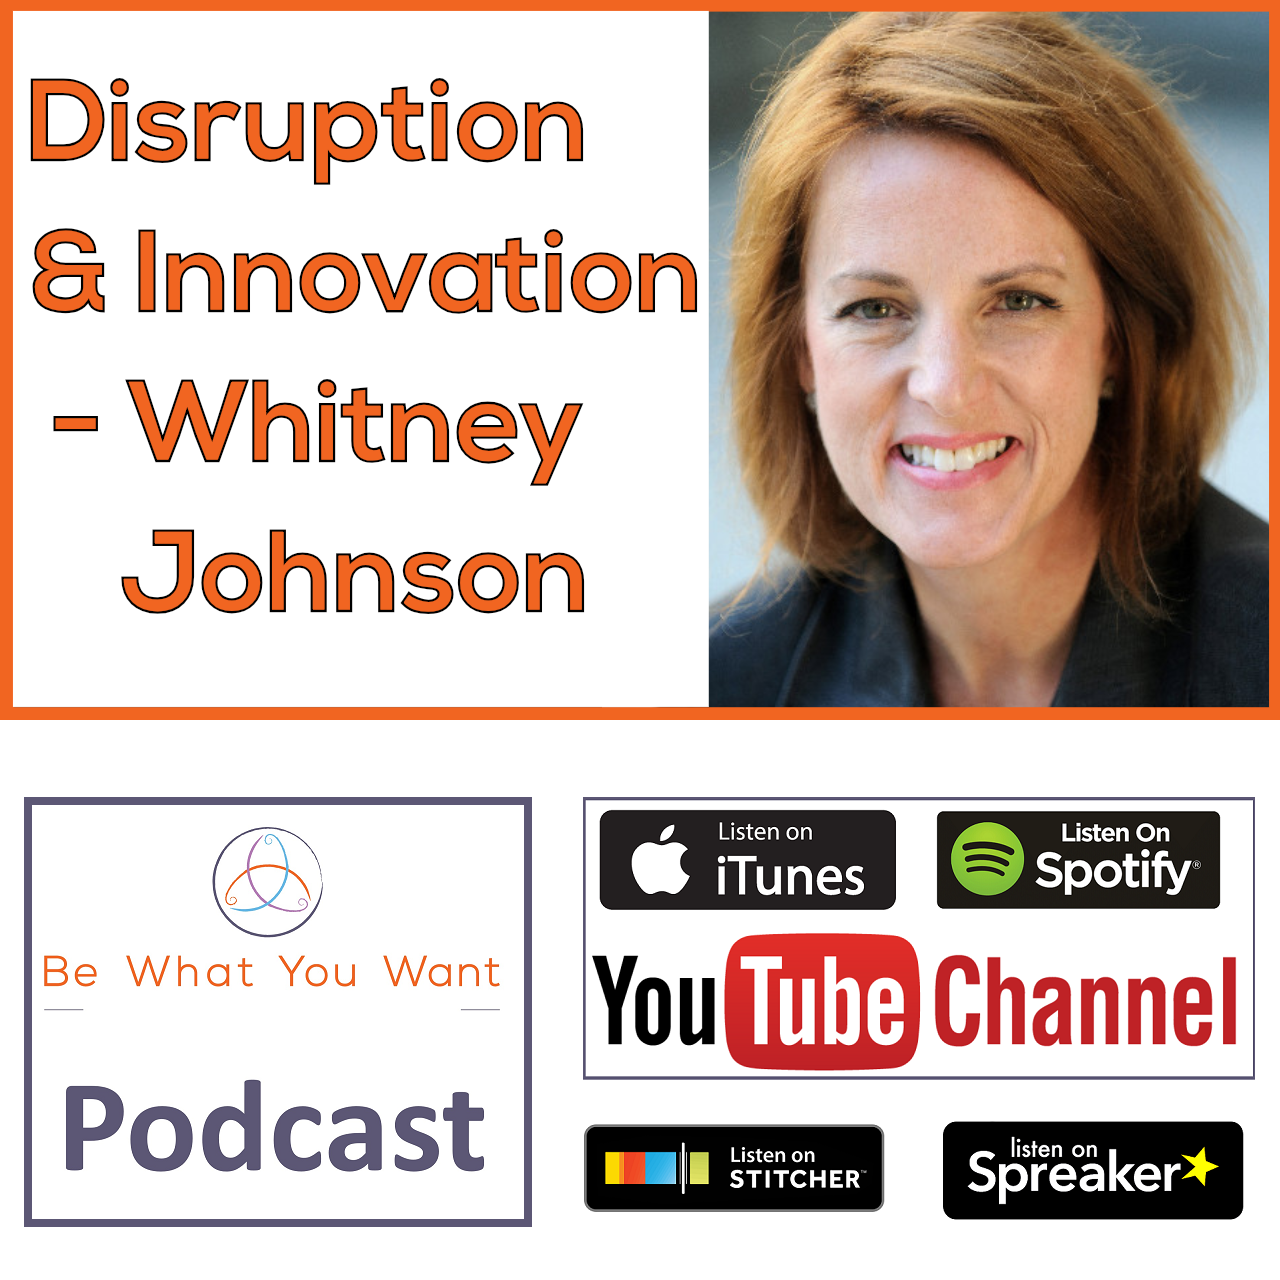 Disruption & Innovation - Whitney Johnson